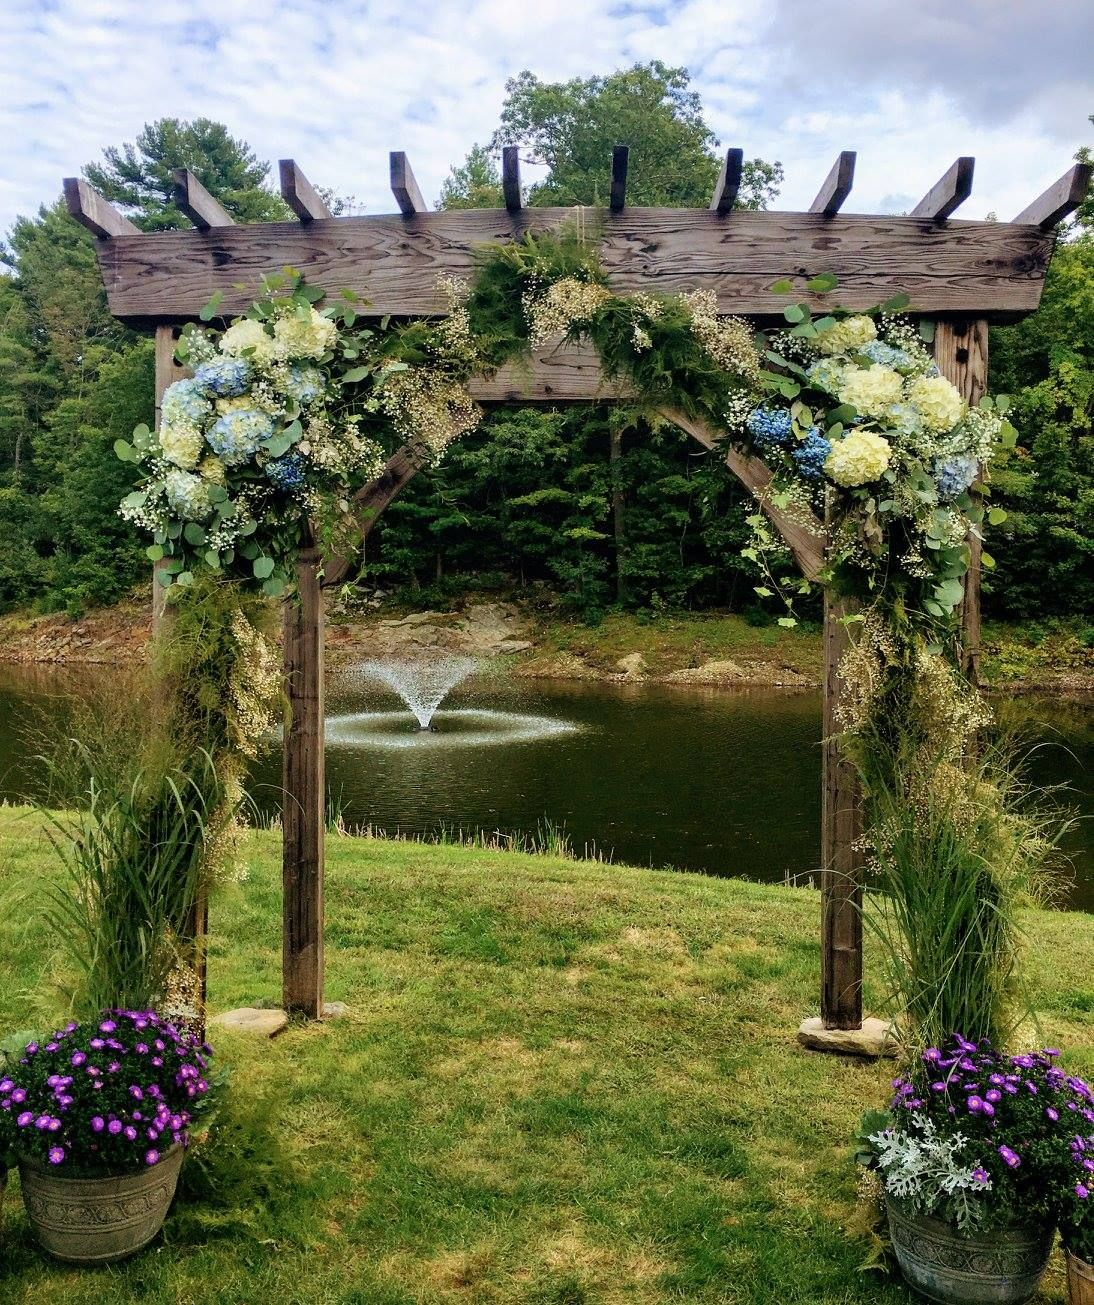 The Wedding Arch At The Fosters Pond Venue, York, Maine